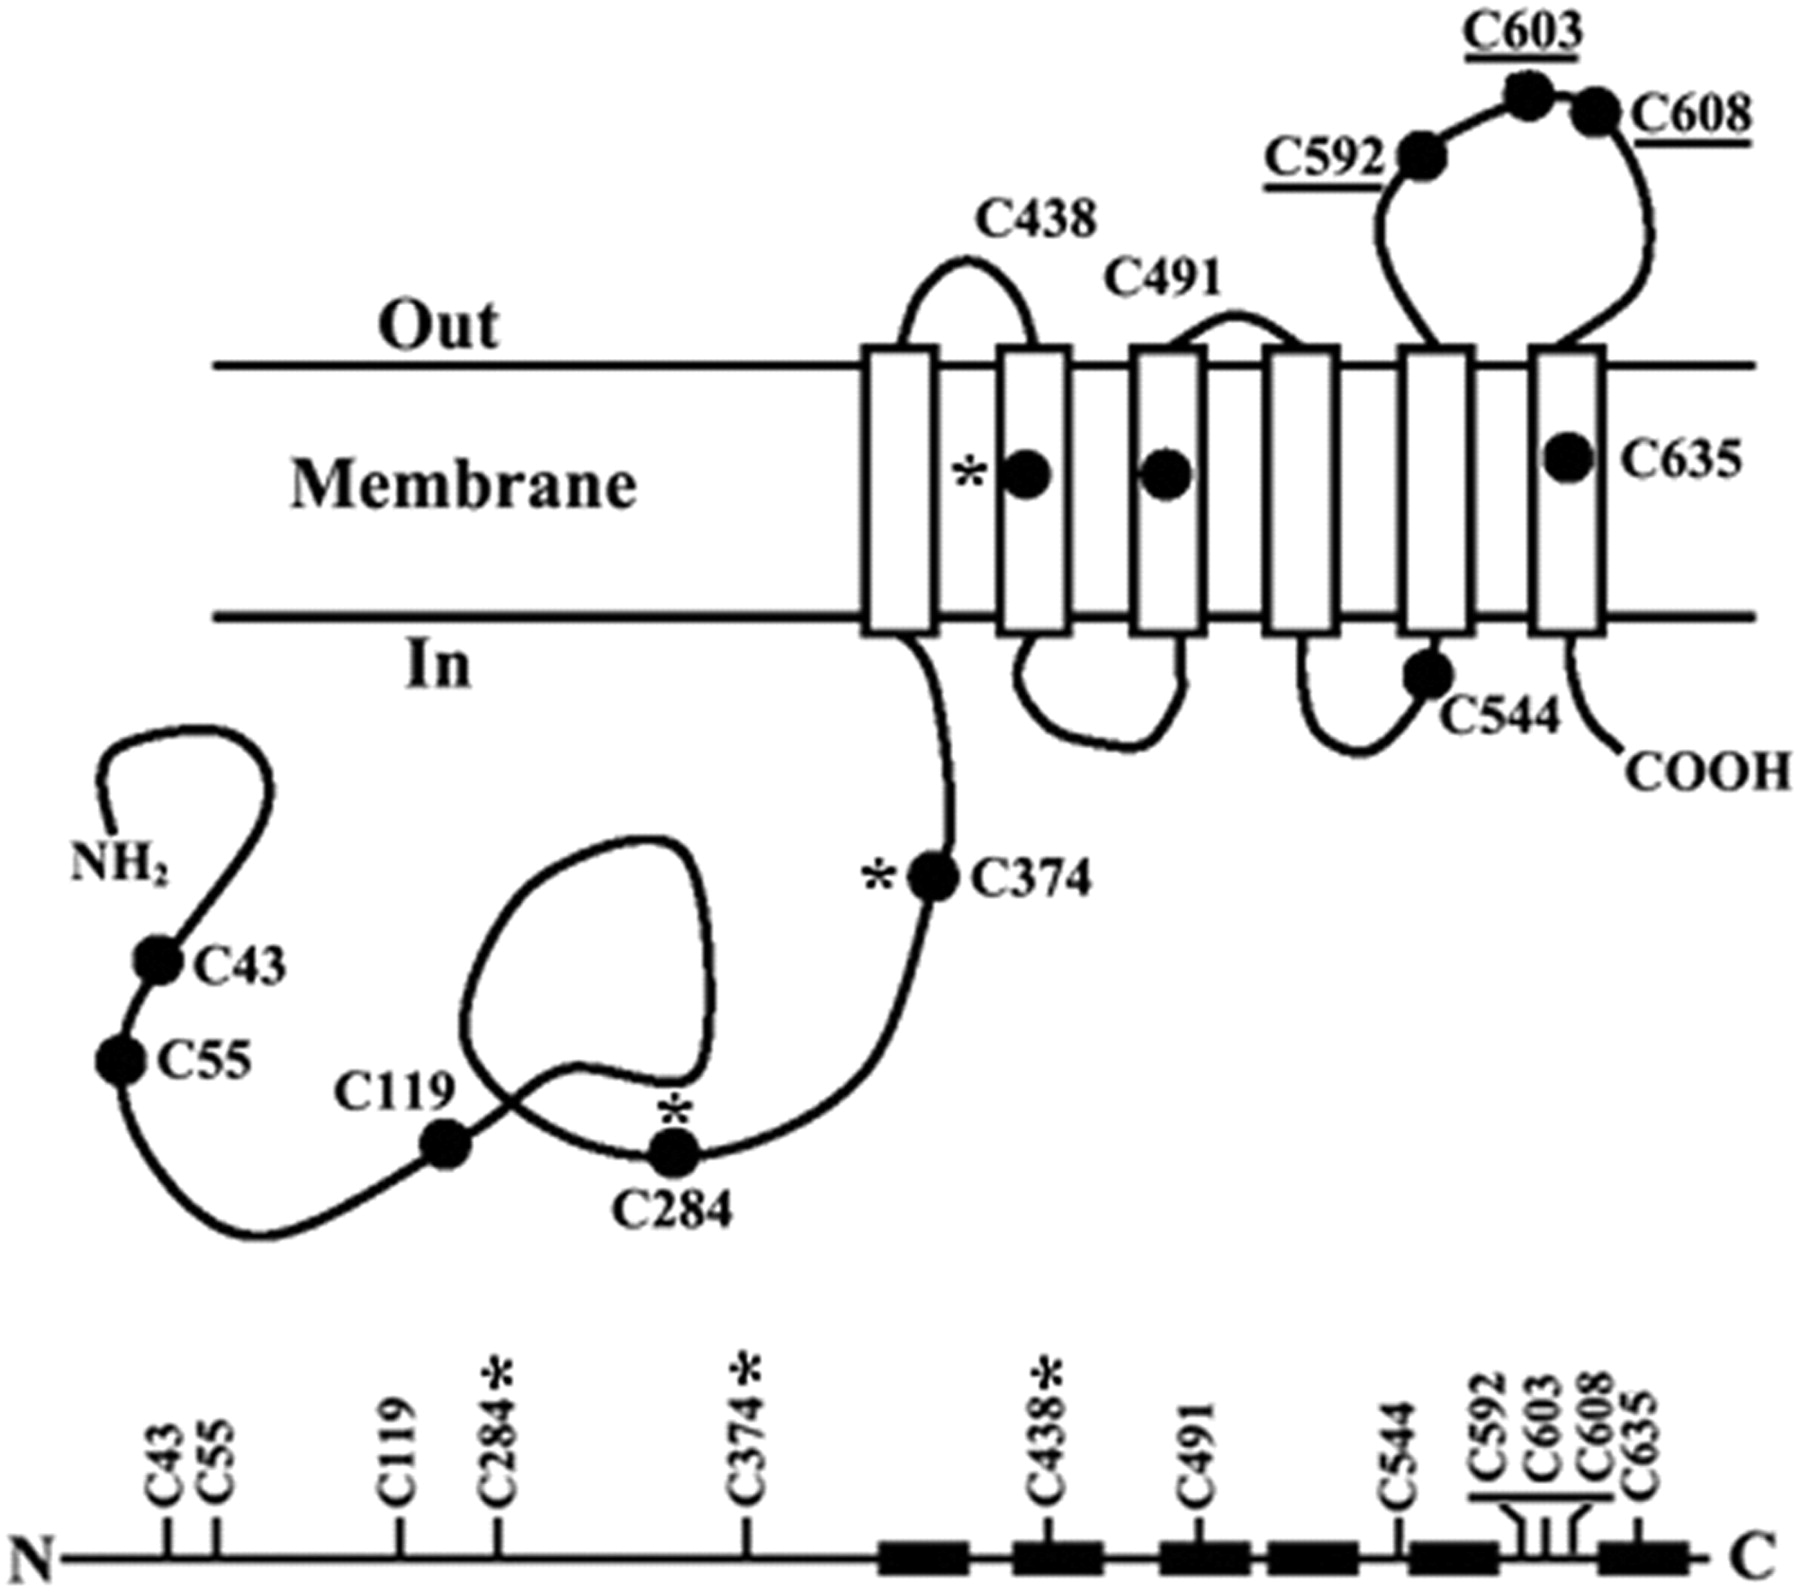 Effect of Cysteine Mutagenesis on the Function and